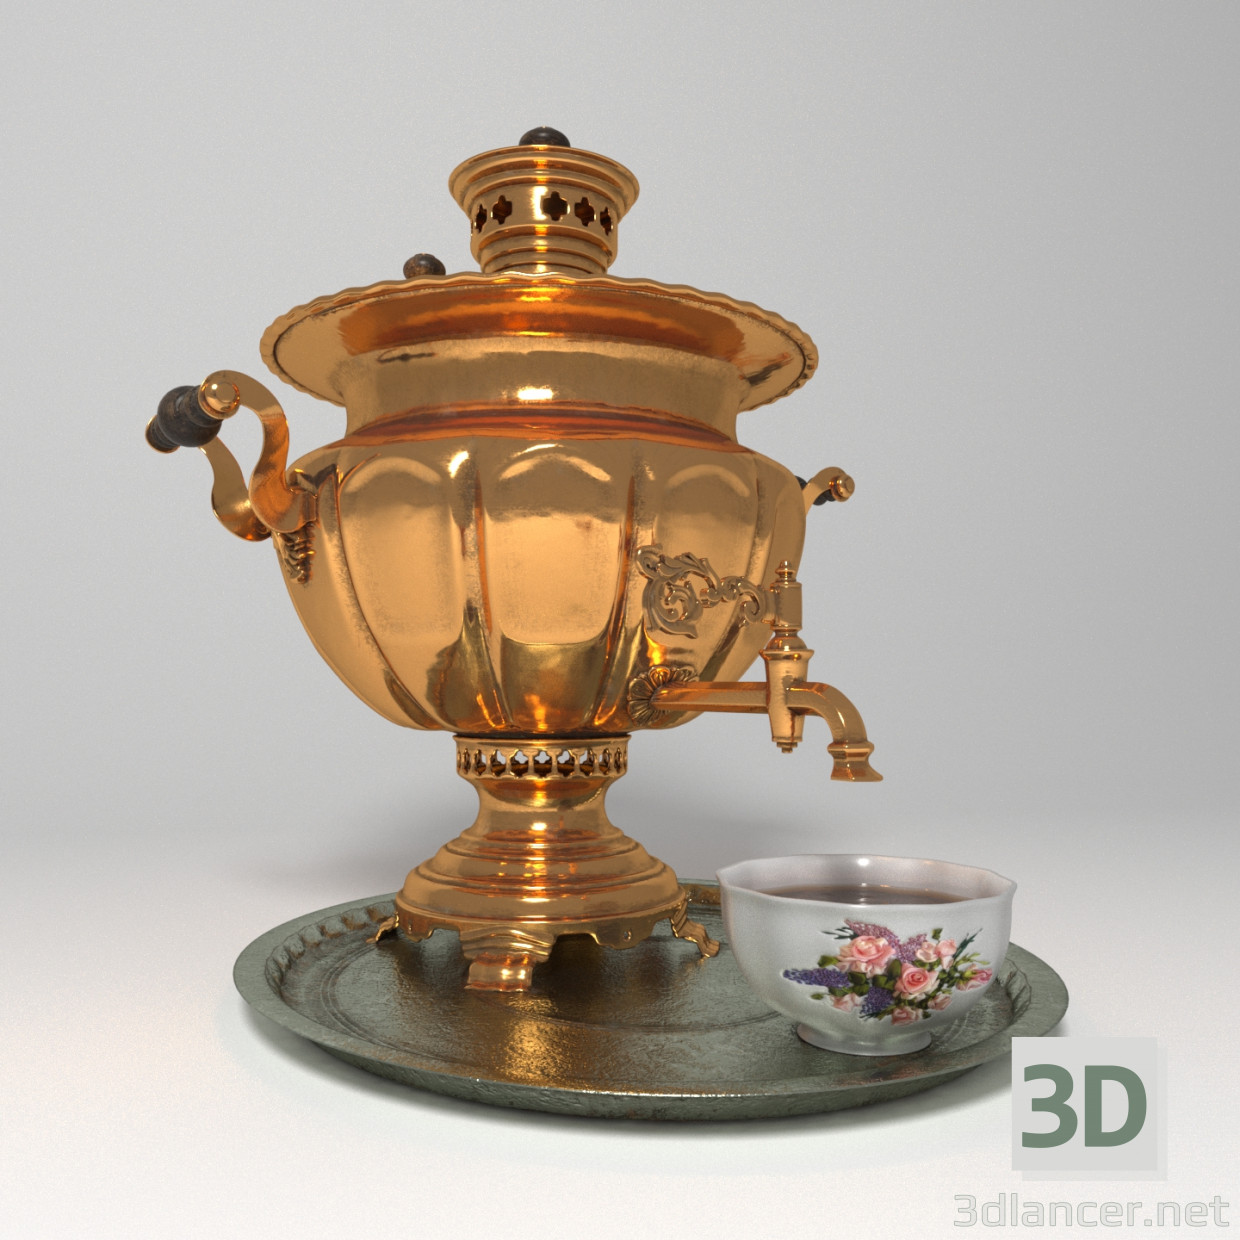 3d modeling Samovar model free download